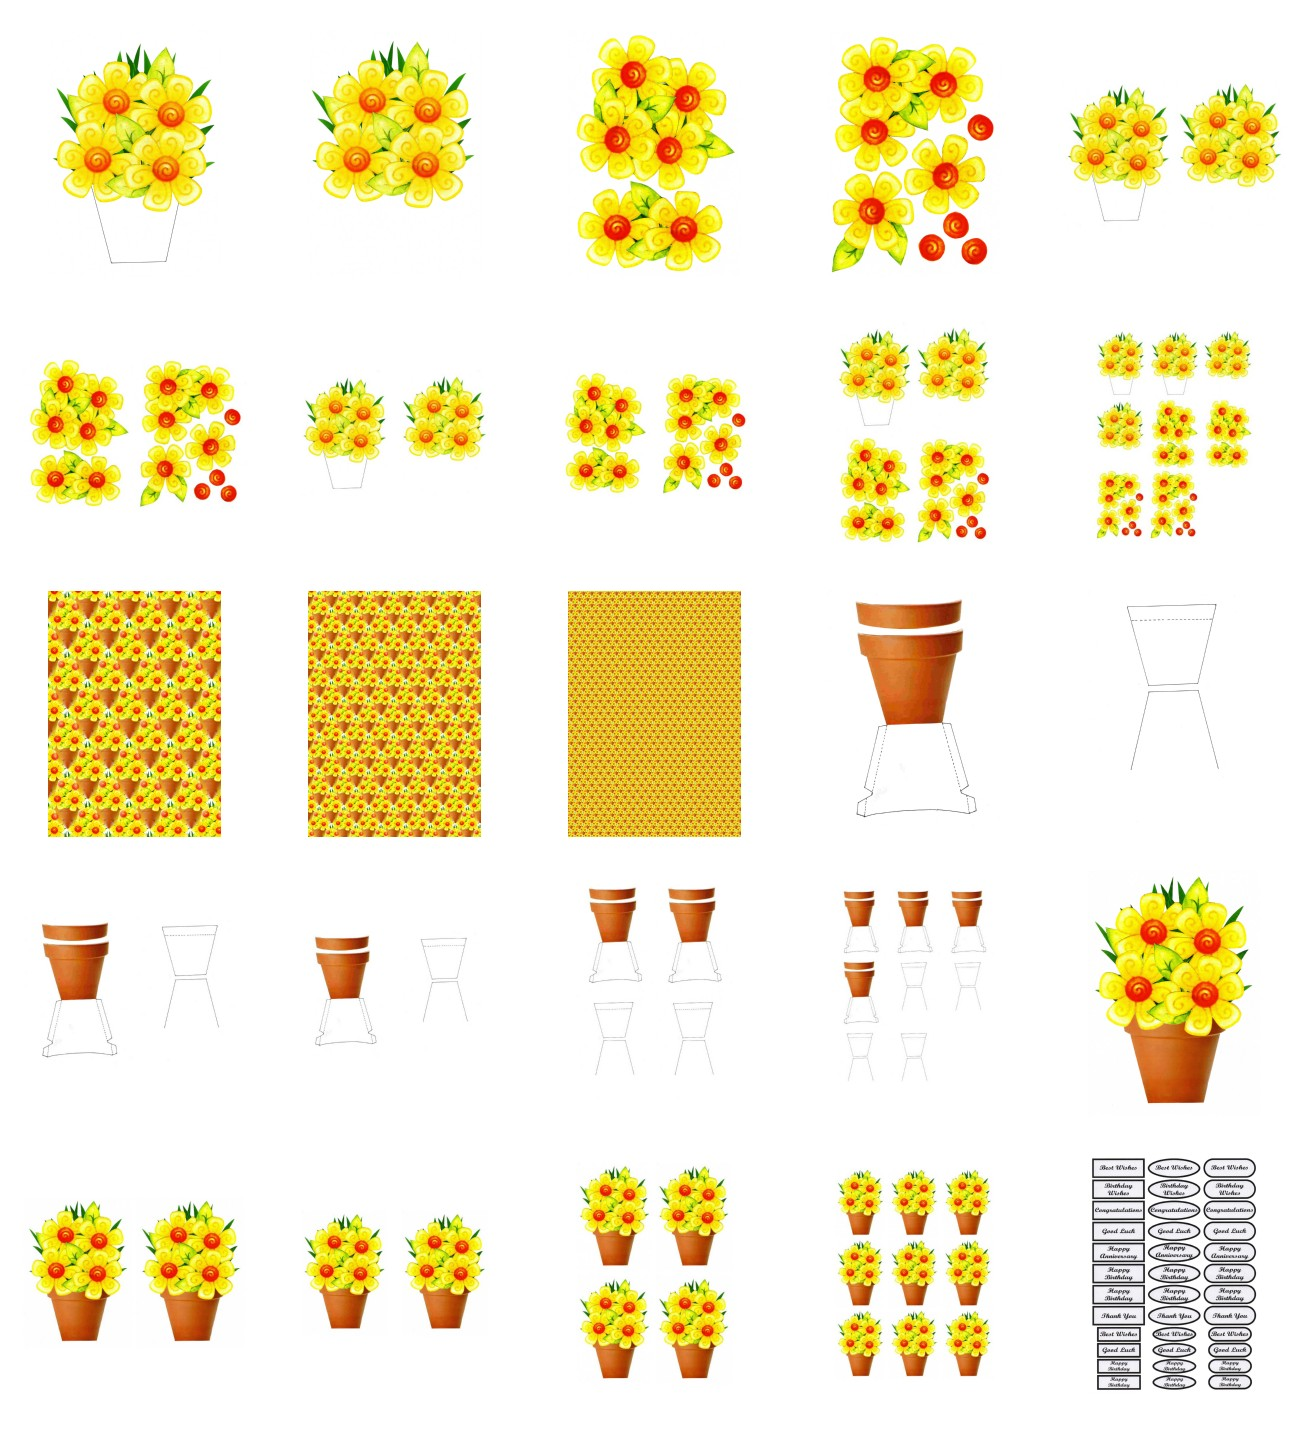 Spring Yellow Flowers Set - 25 Pages to Download